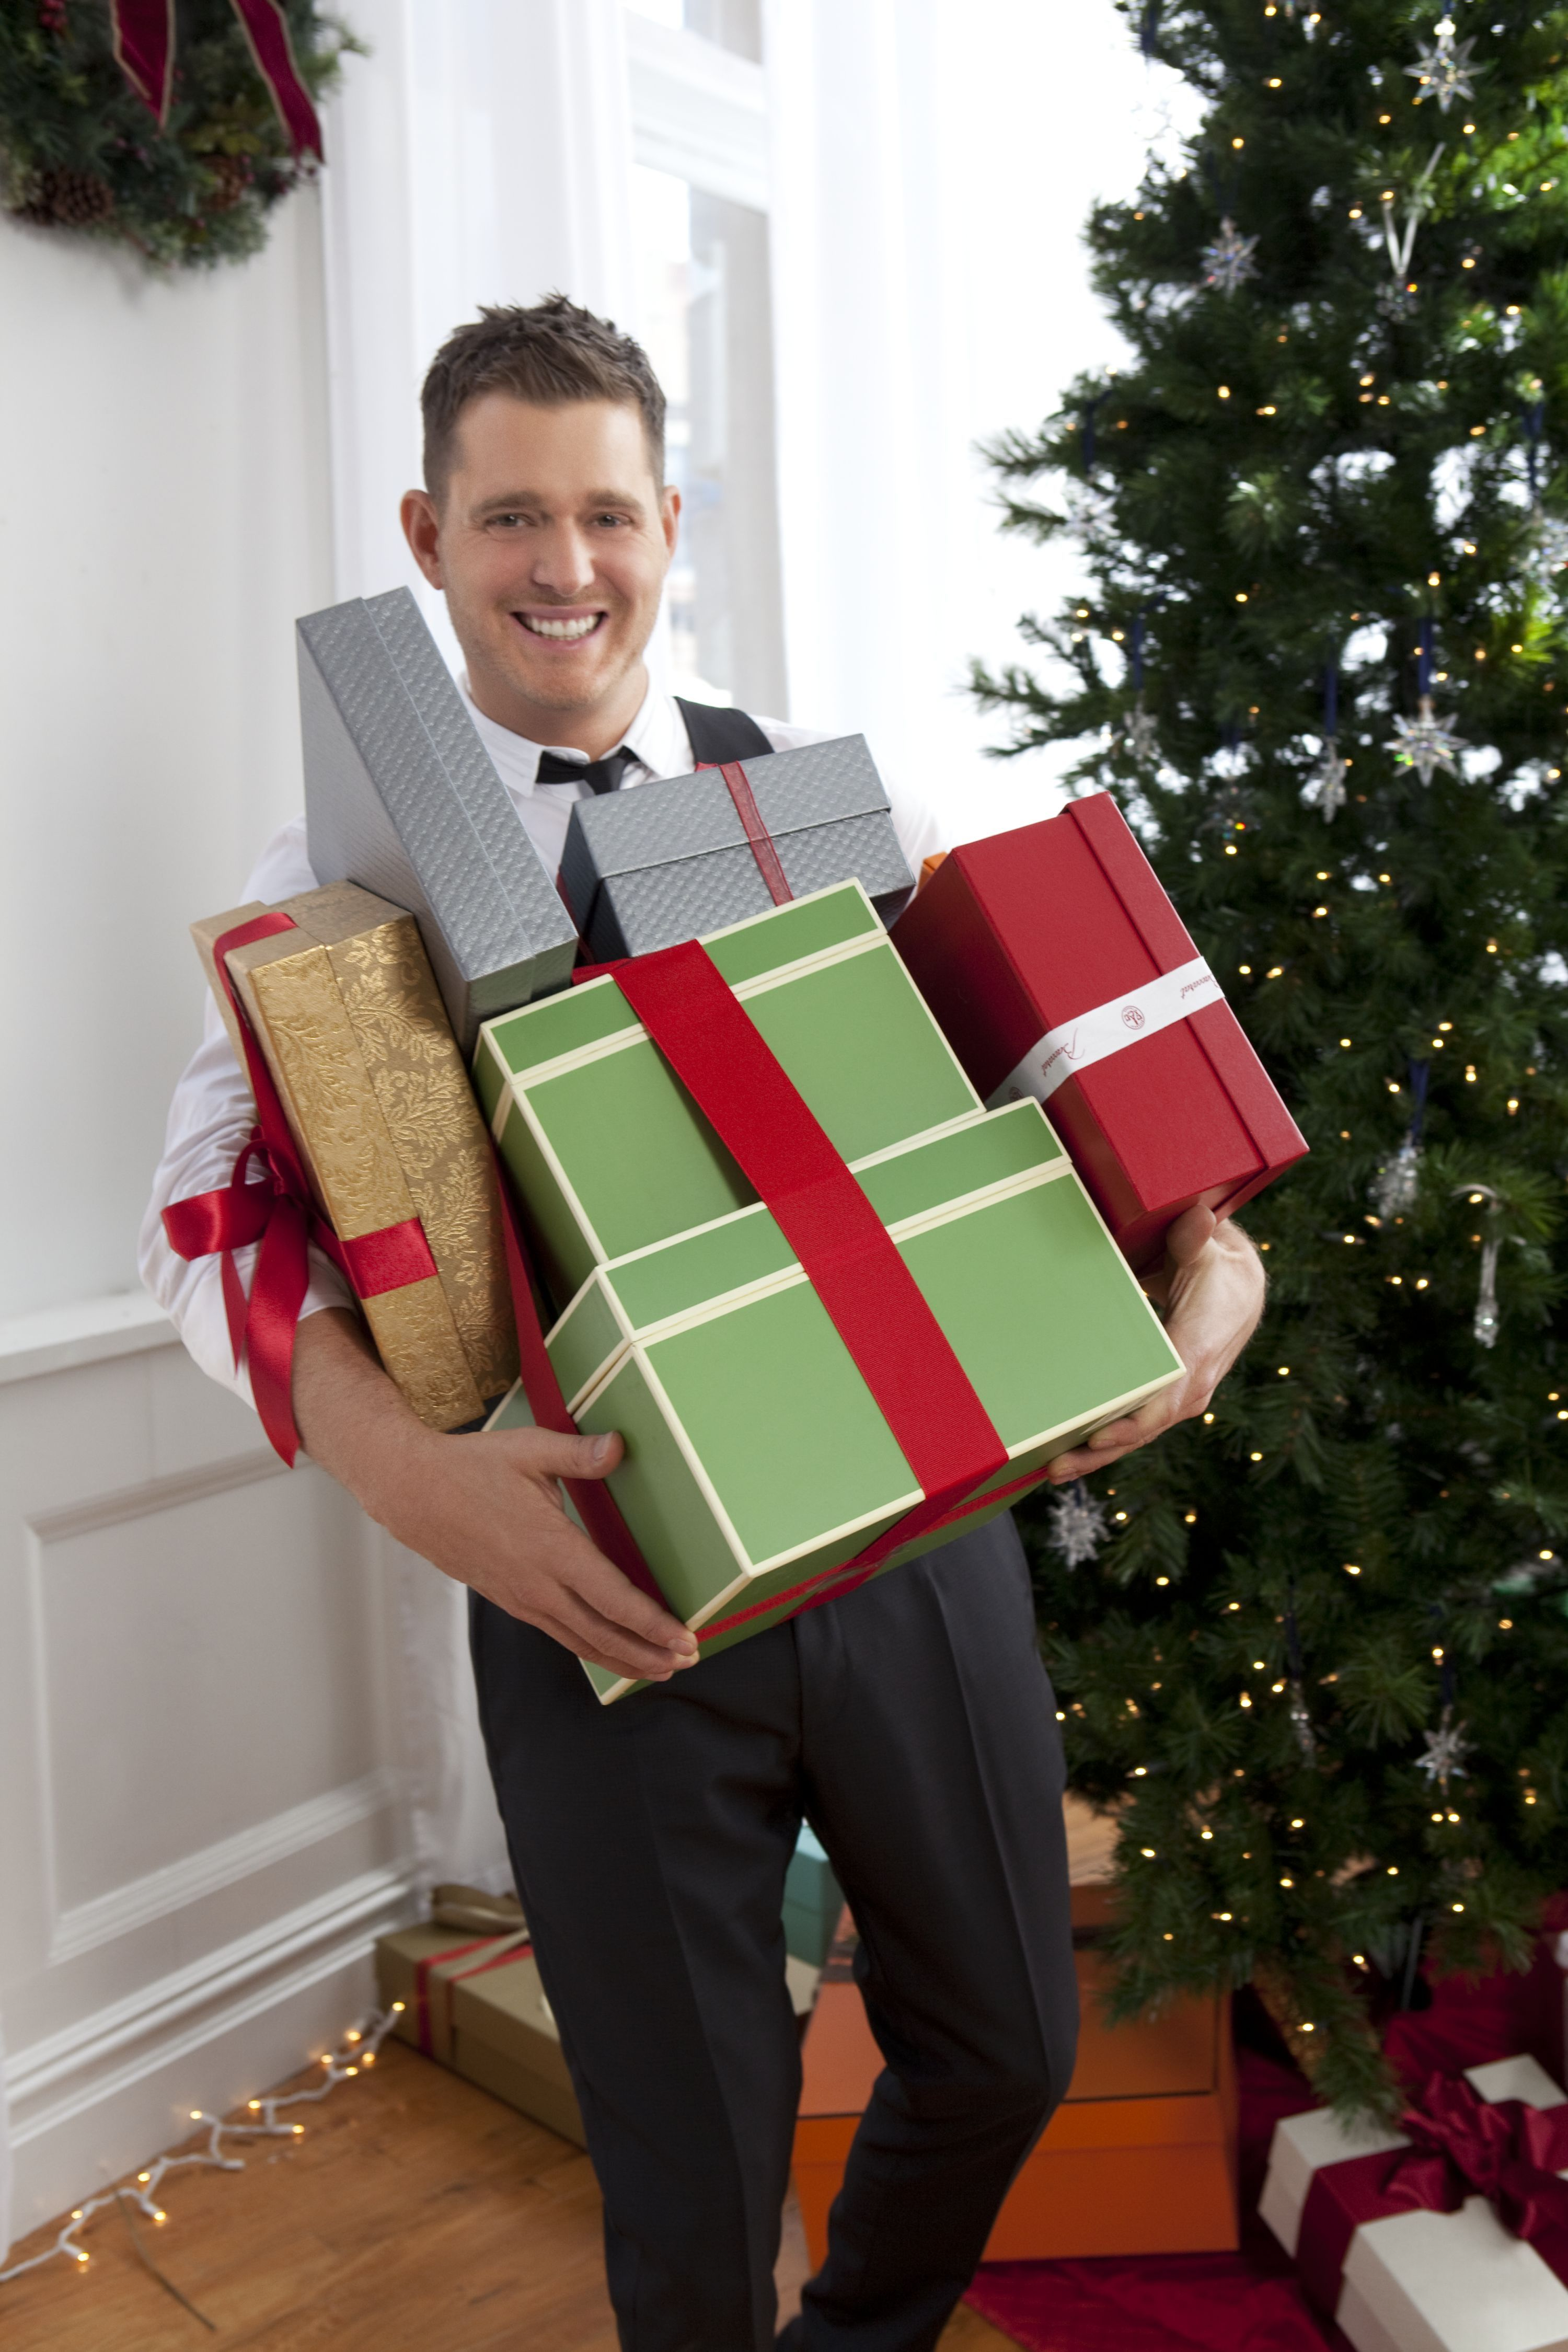 Michael Buble And Christmas It S My Two Favorite Things Together Michael Buble Christmas Michael Buble Christmas Websites